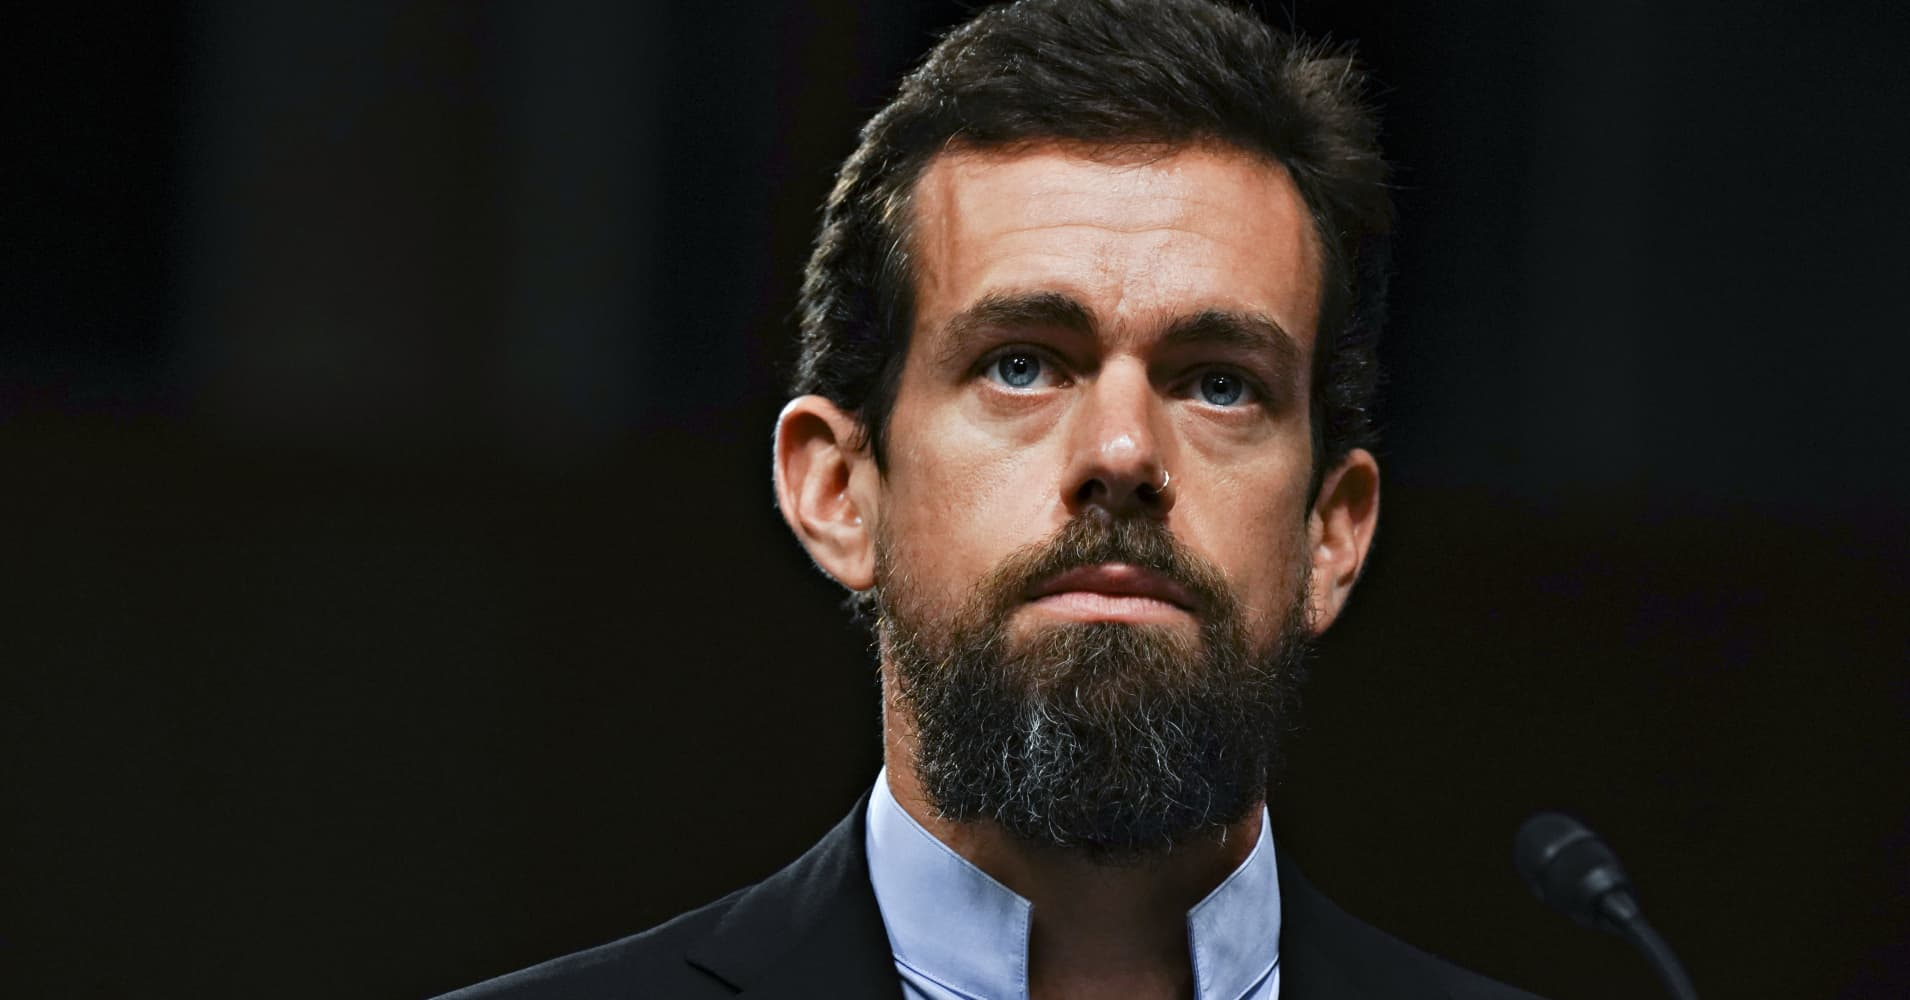 Square falls after reporting slower growth and weak Q1 earnings guidance